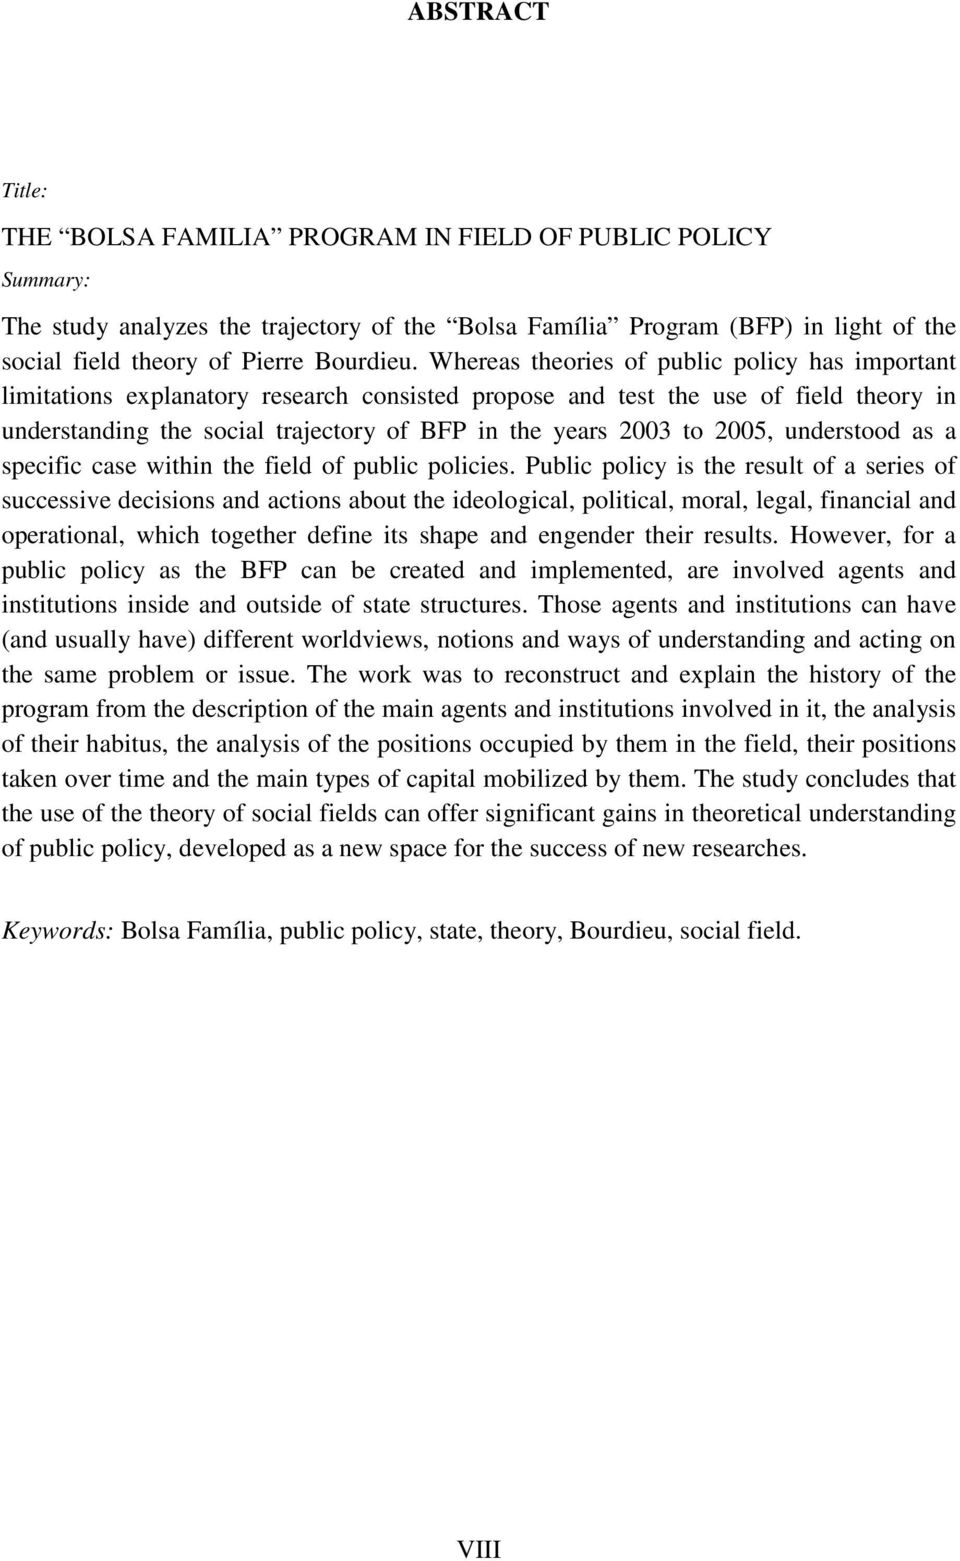 Whereas theories of public policy has important limitations explanatory research consisted propose and test the use of field theory in understanding the social trajectory of BFP in the years 2003 to